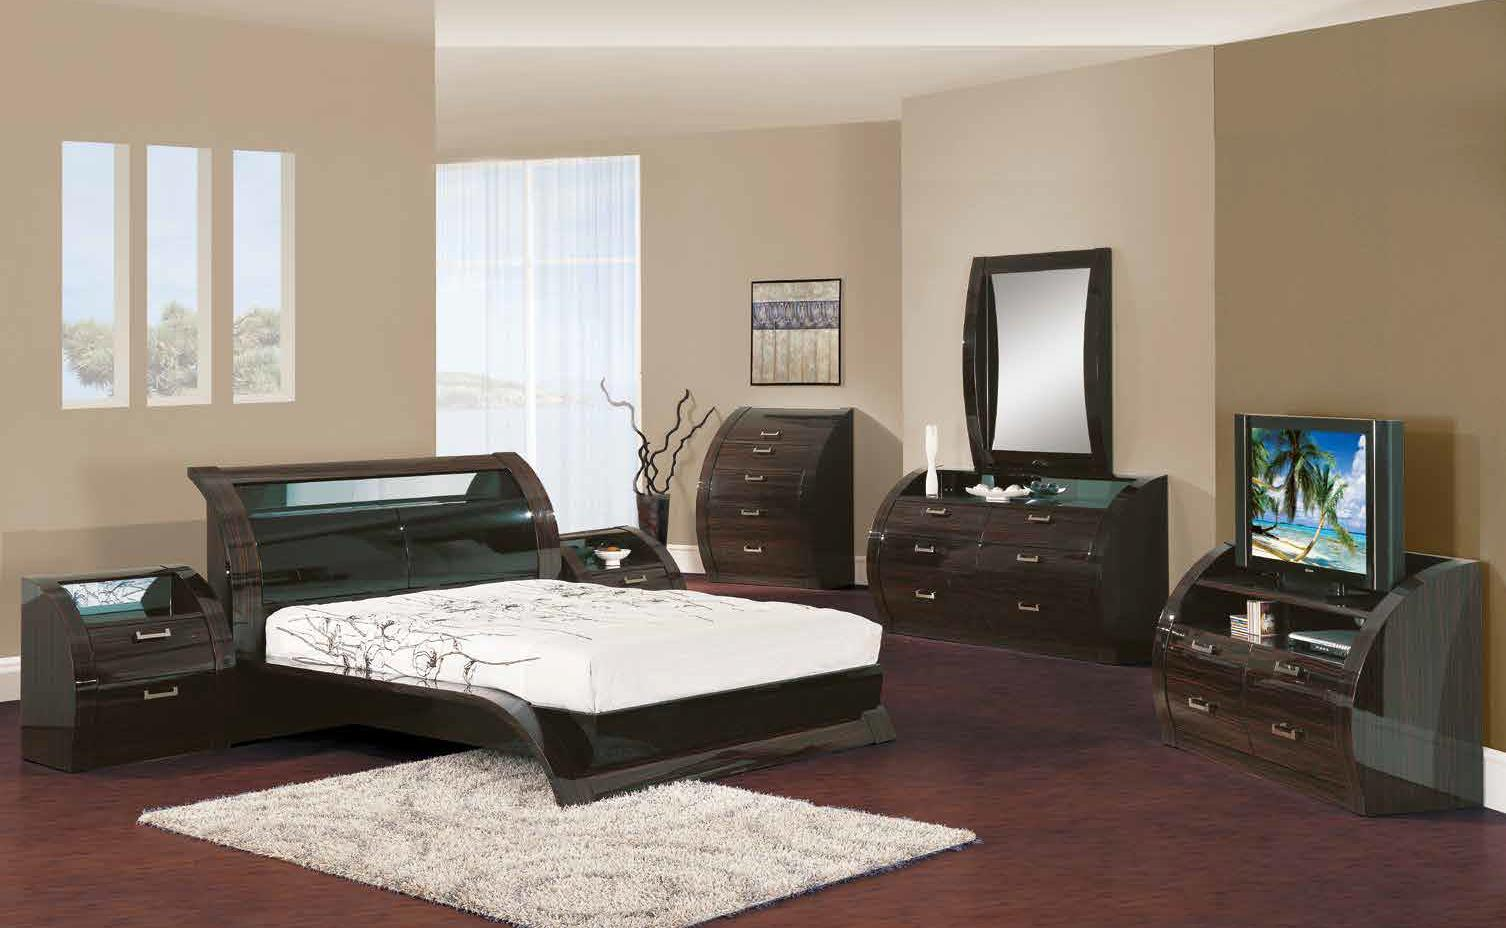 king size black bedroom furniture sets photo - 2